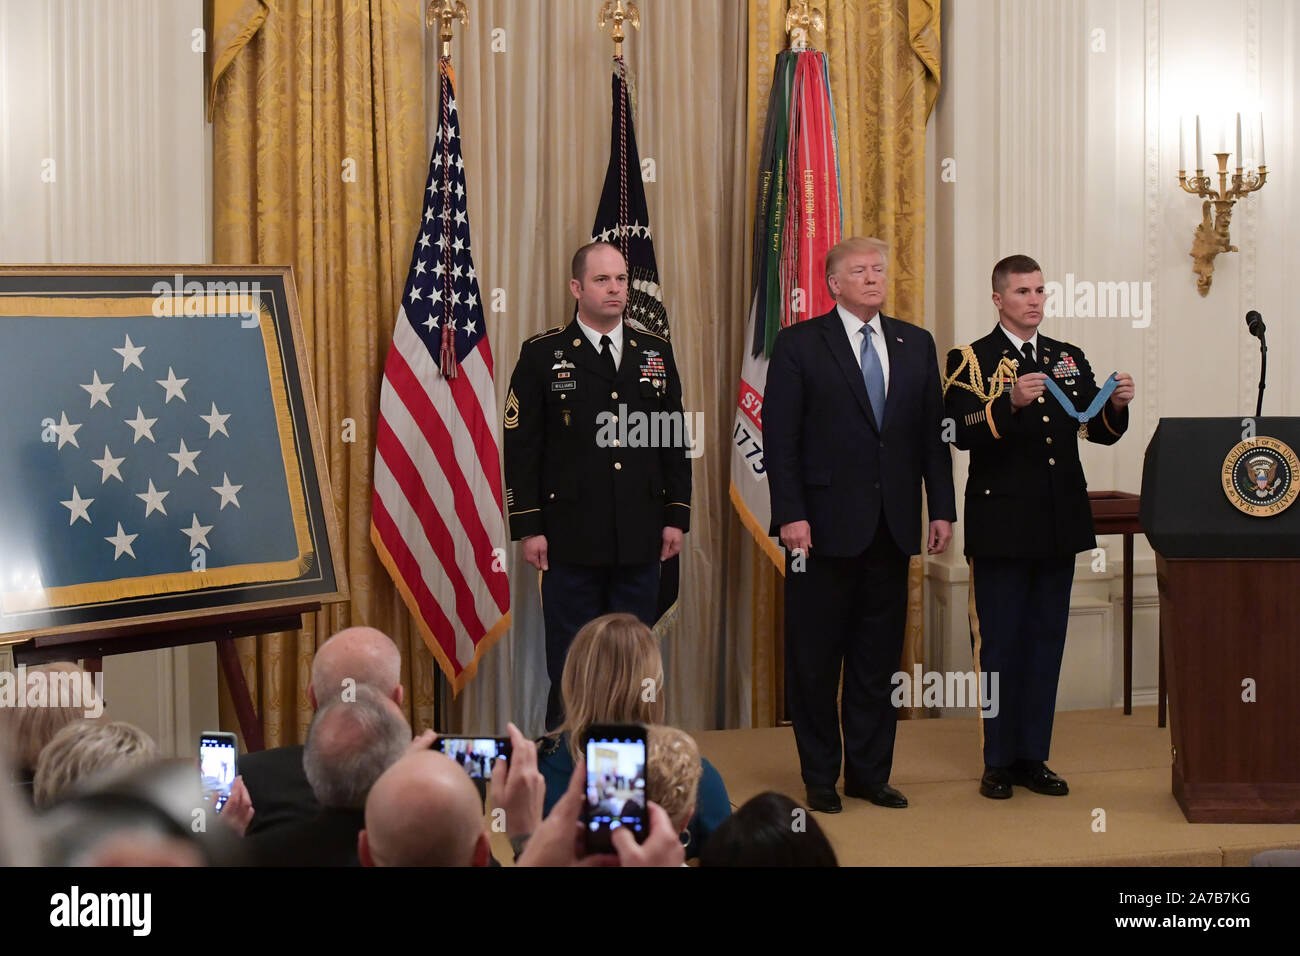 U.S. Army Master Sgt. Matthew O. Williams stands as the citation is read before receiving the Medal of Honor from President Donald J. Trump during a ceremony at the White House in Washington, D.C., Oct. 30, 2019. Williams was awarded the Medal of Honor for his actions while serving as a weapons sergeant with the Special Forces Operational Detachment Alpha 3336, Special Operations Task Force-33, in support of Operation Enduring Freedom in Afghanistan on April 6, 2008. (U.S. Army Photo by Sgt. Keisha Brown) Stock Photo